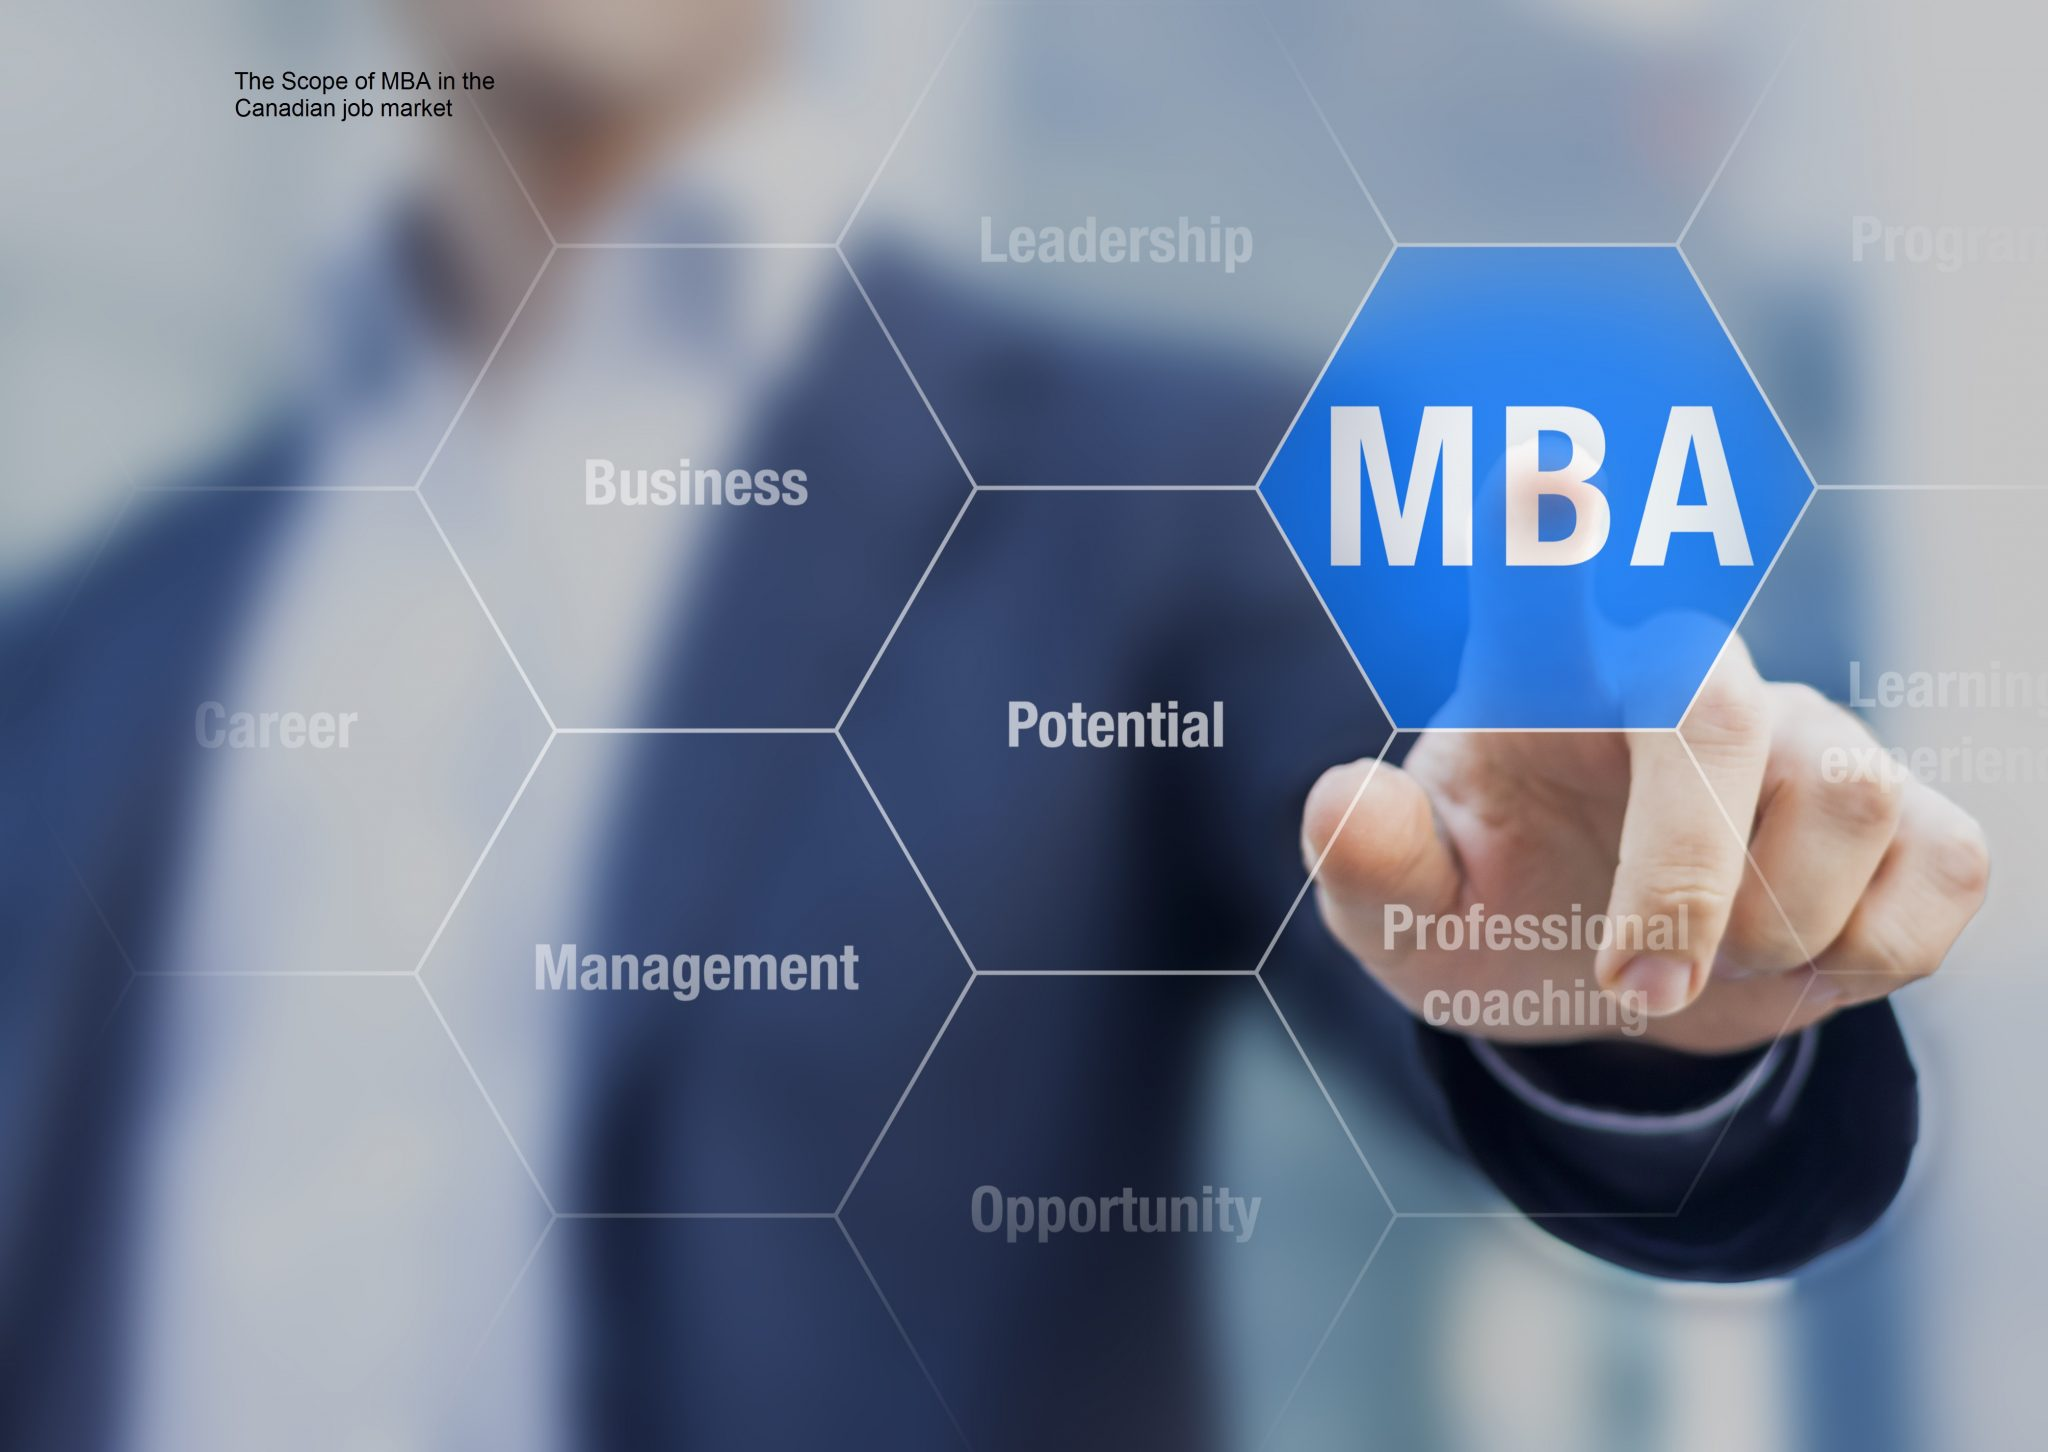 The Scope of MBA in the Canadian job market